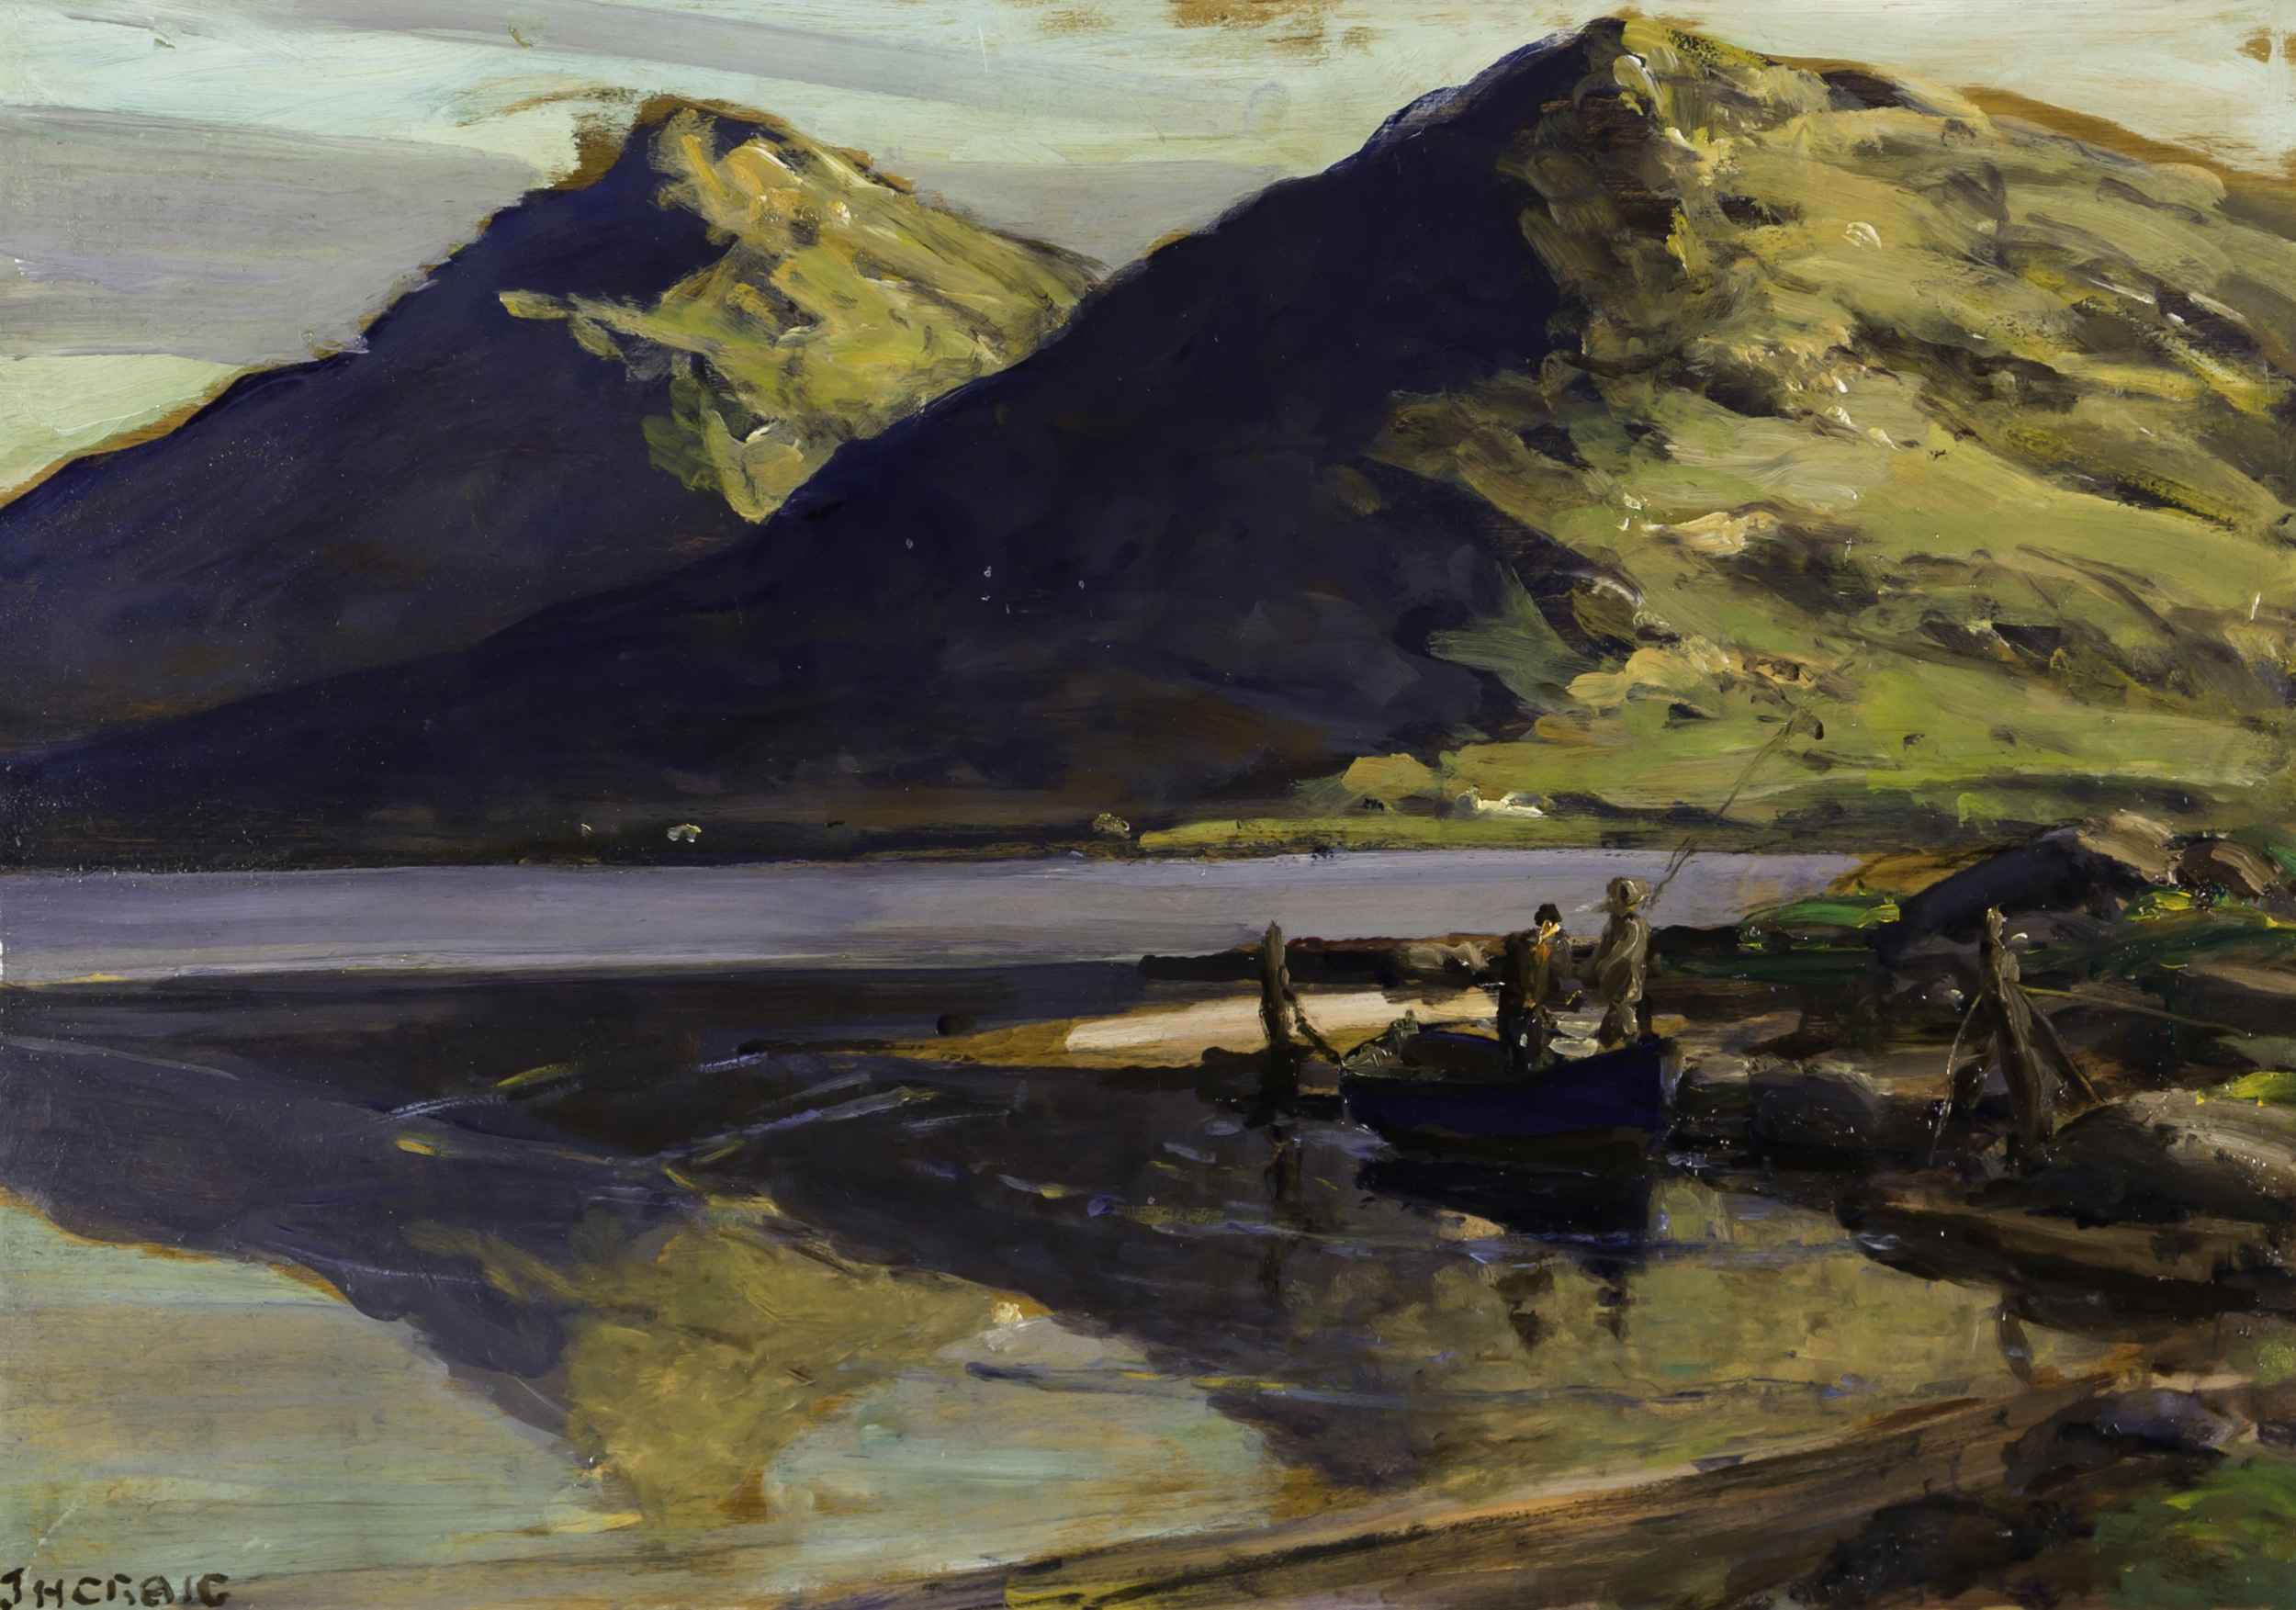 A gallery of paintings that capture the beauty of Irish